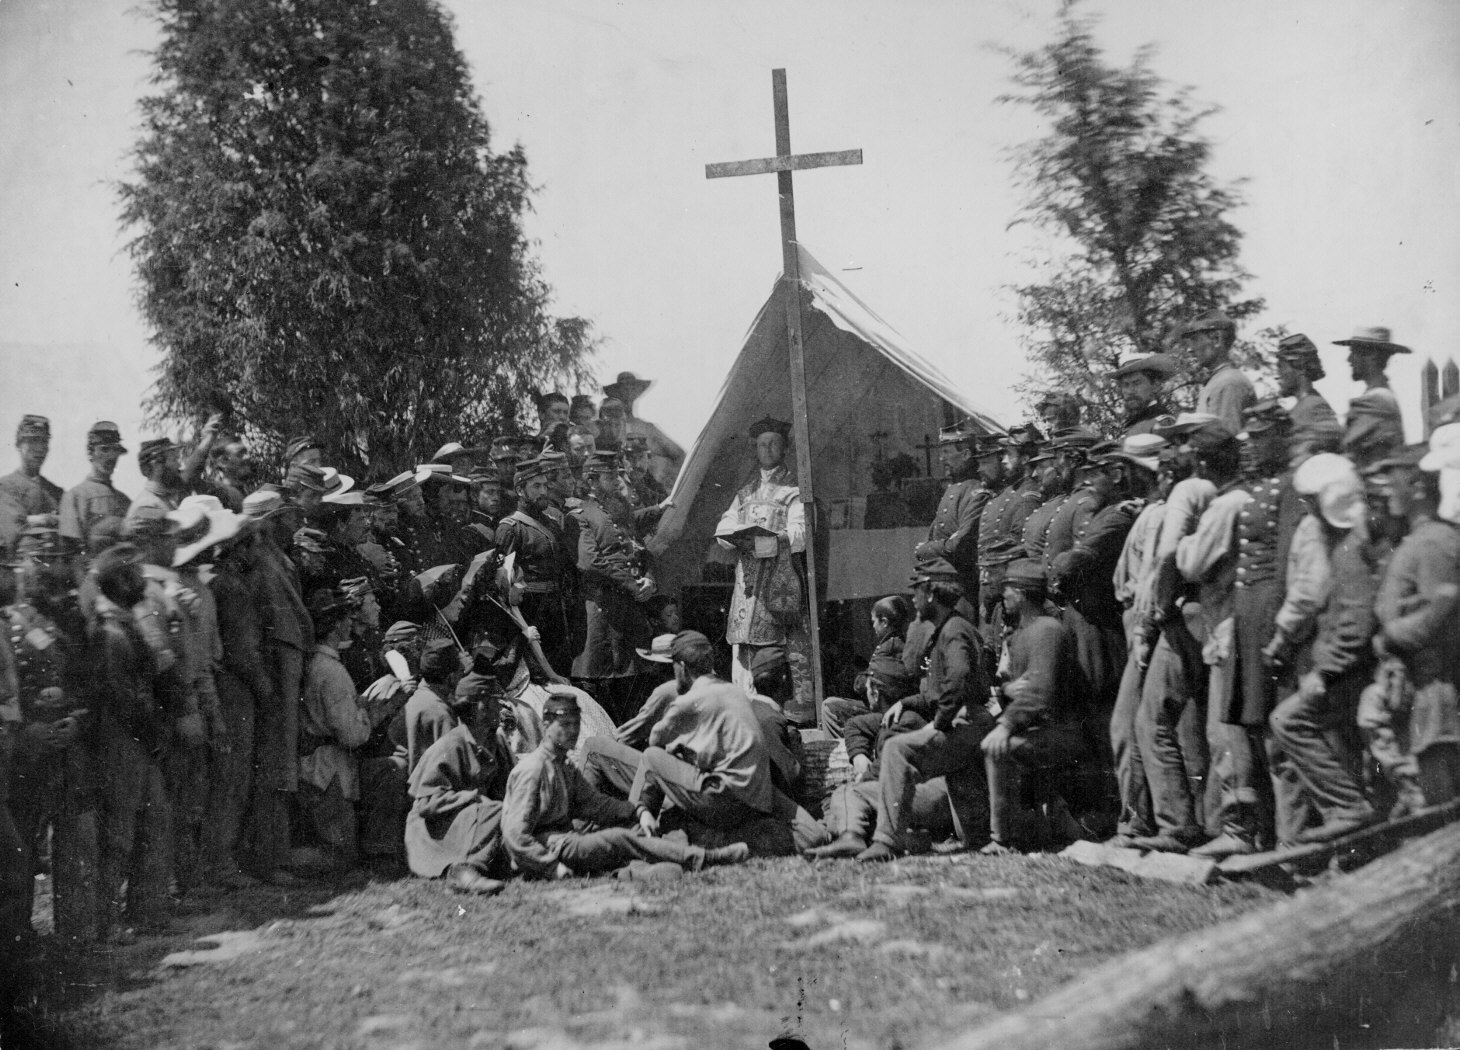 Officers and men of the Irish-Catholic 69th New York Volunteer Regiment attend church services at Fort Corcoran in 1861.